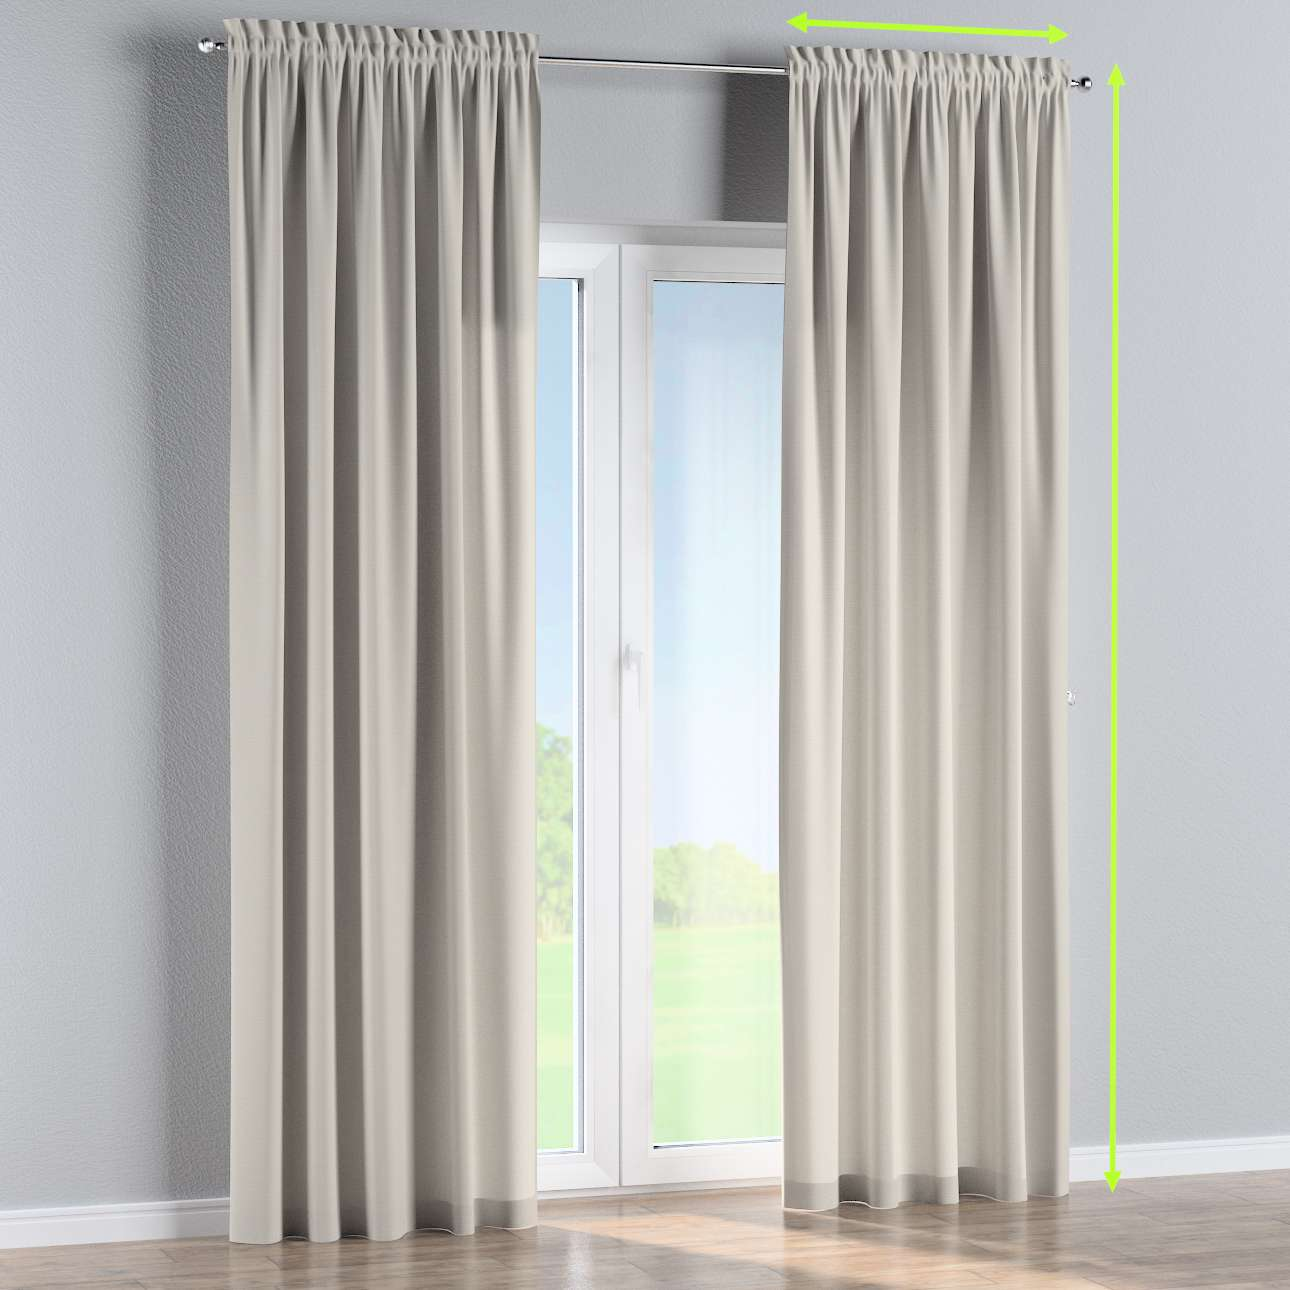 Slot and frill lined curtains in collection Panama Cotton, fabric: 702-31